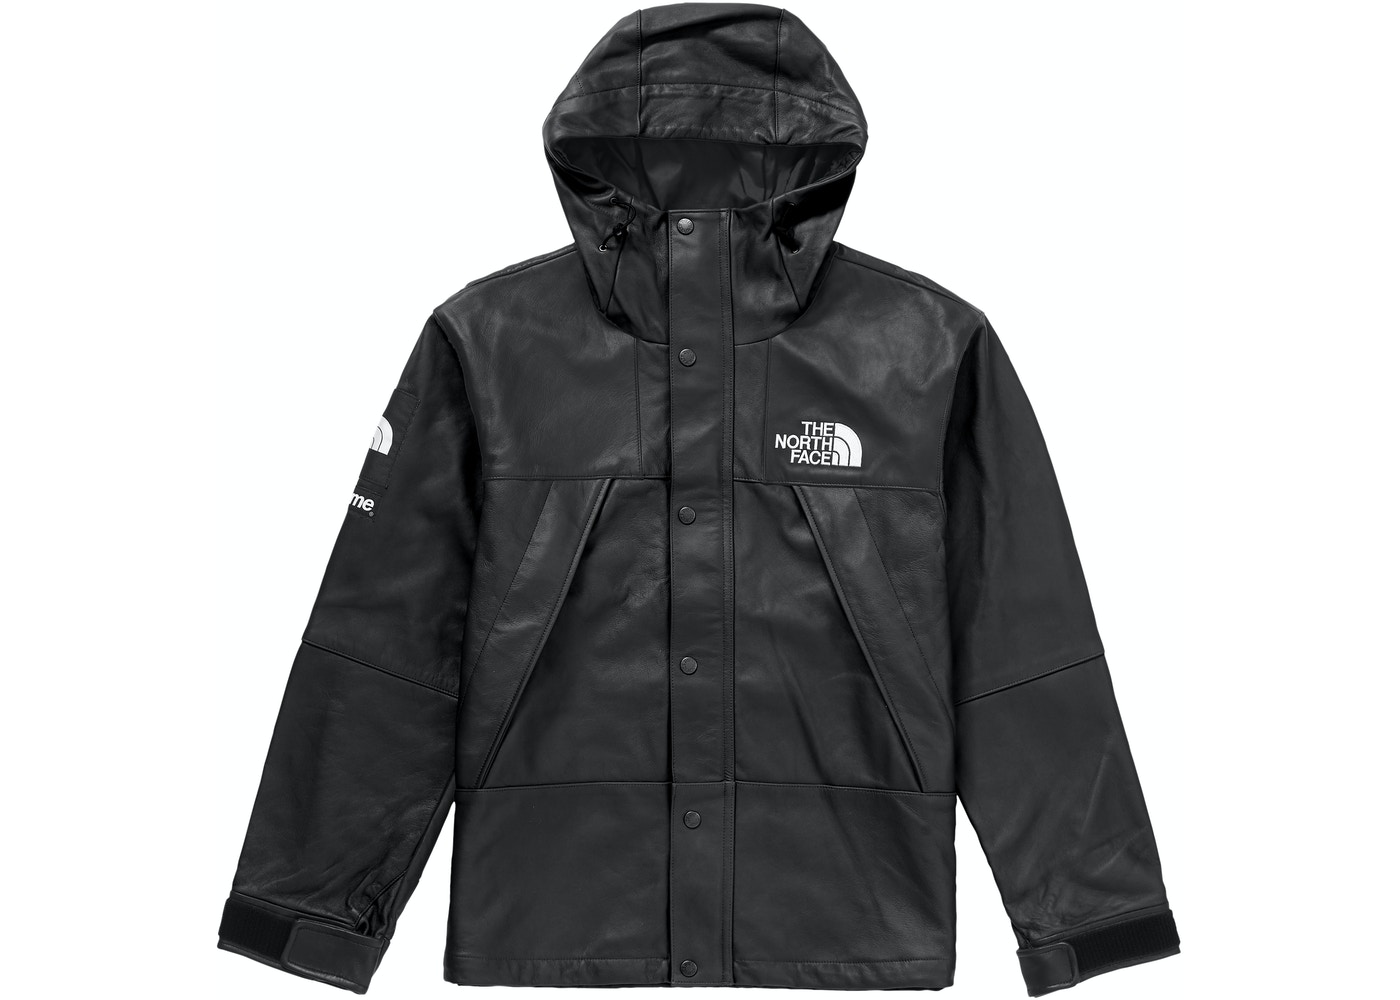 839eaebe Sell. or Ask. Size S. View All Bids. Supreme The North Face ...